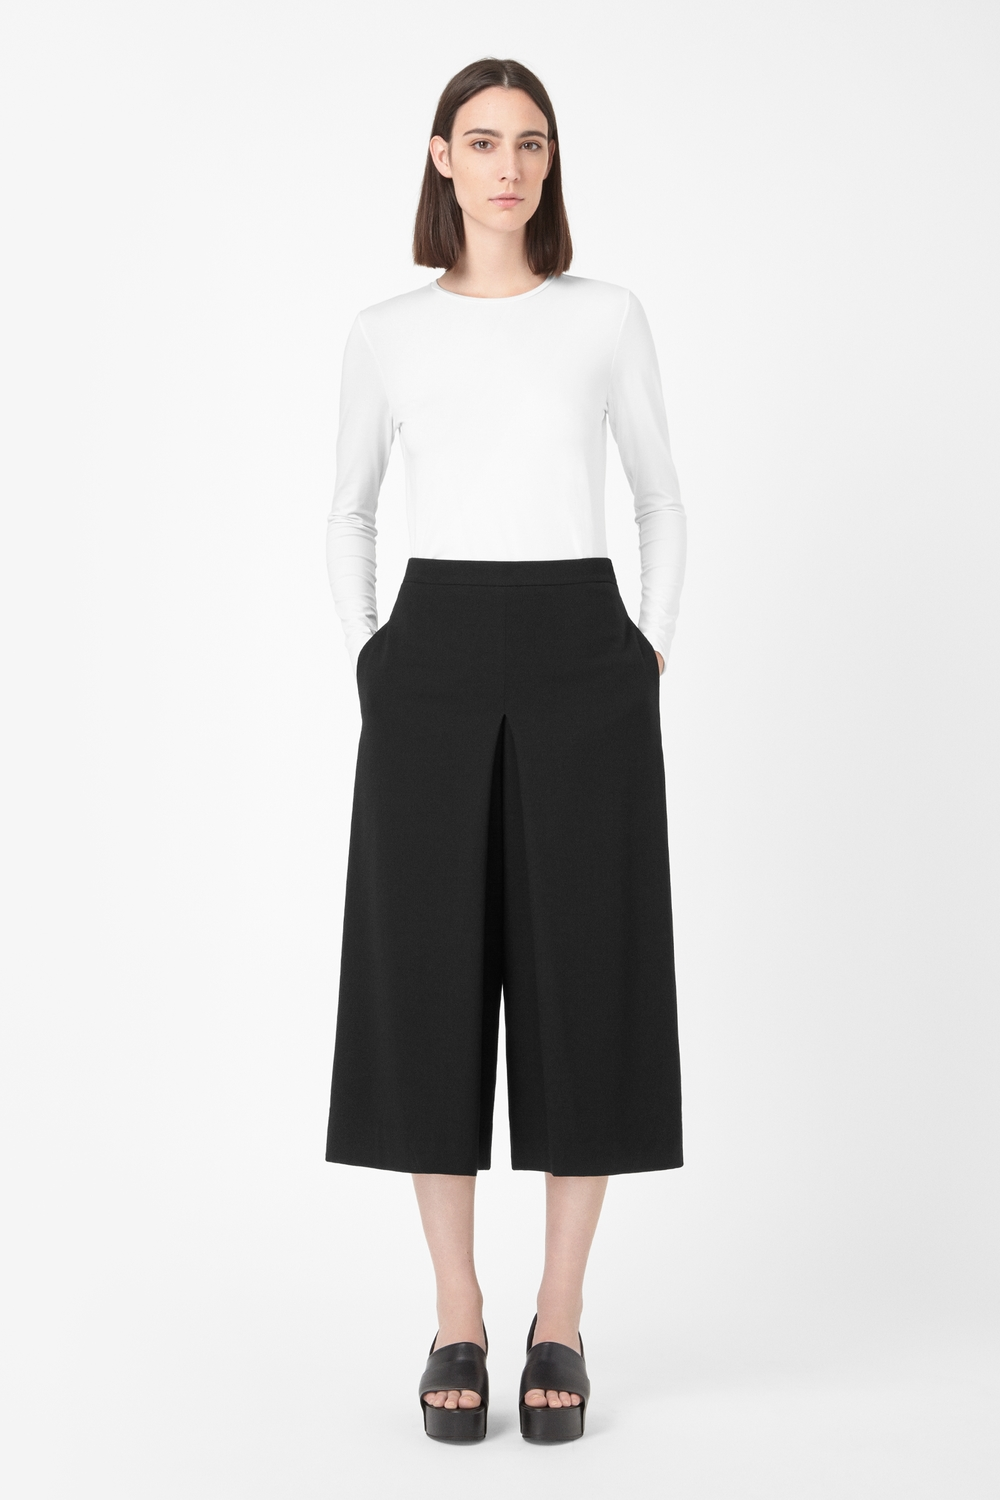 Pleated Culottes. COS Stores. $125.